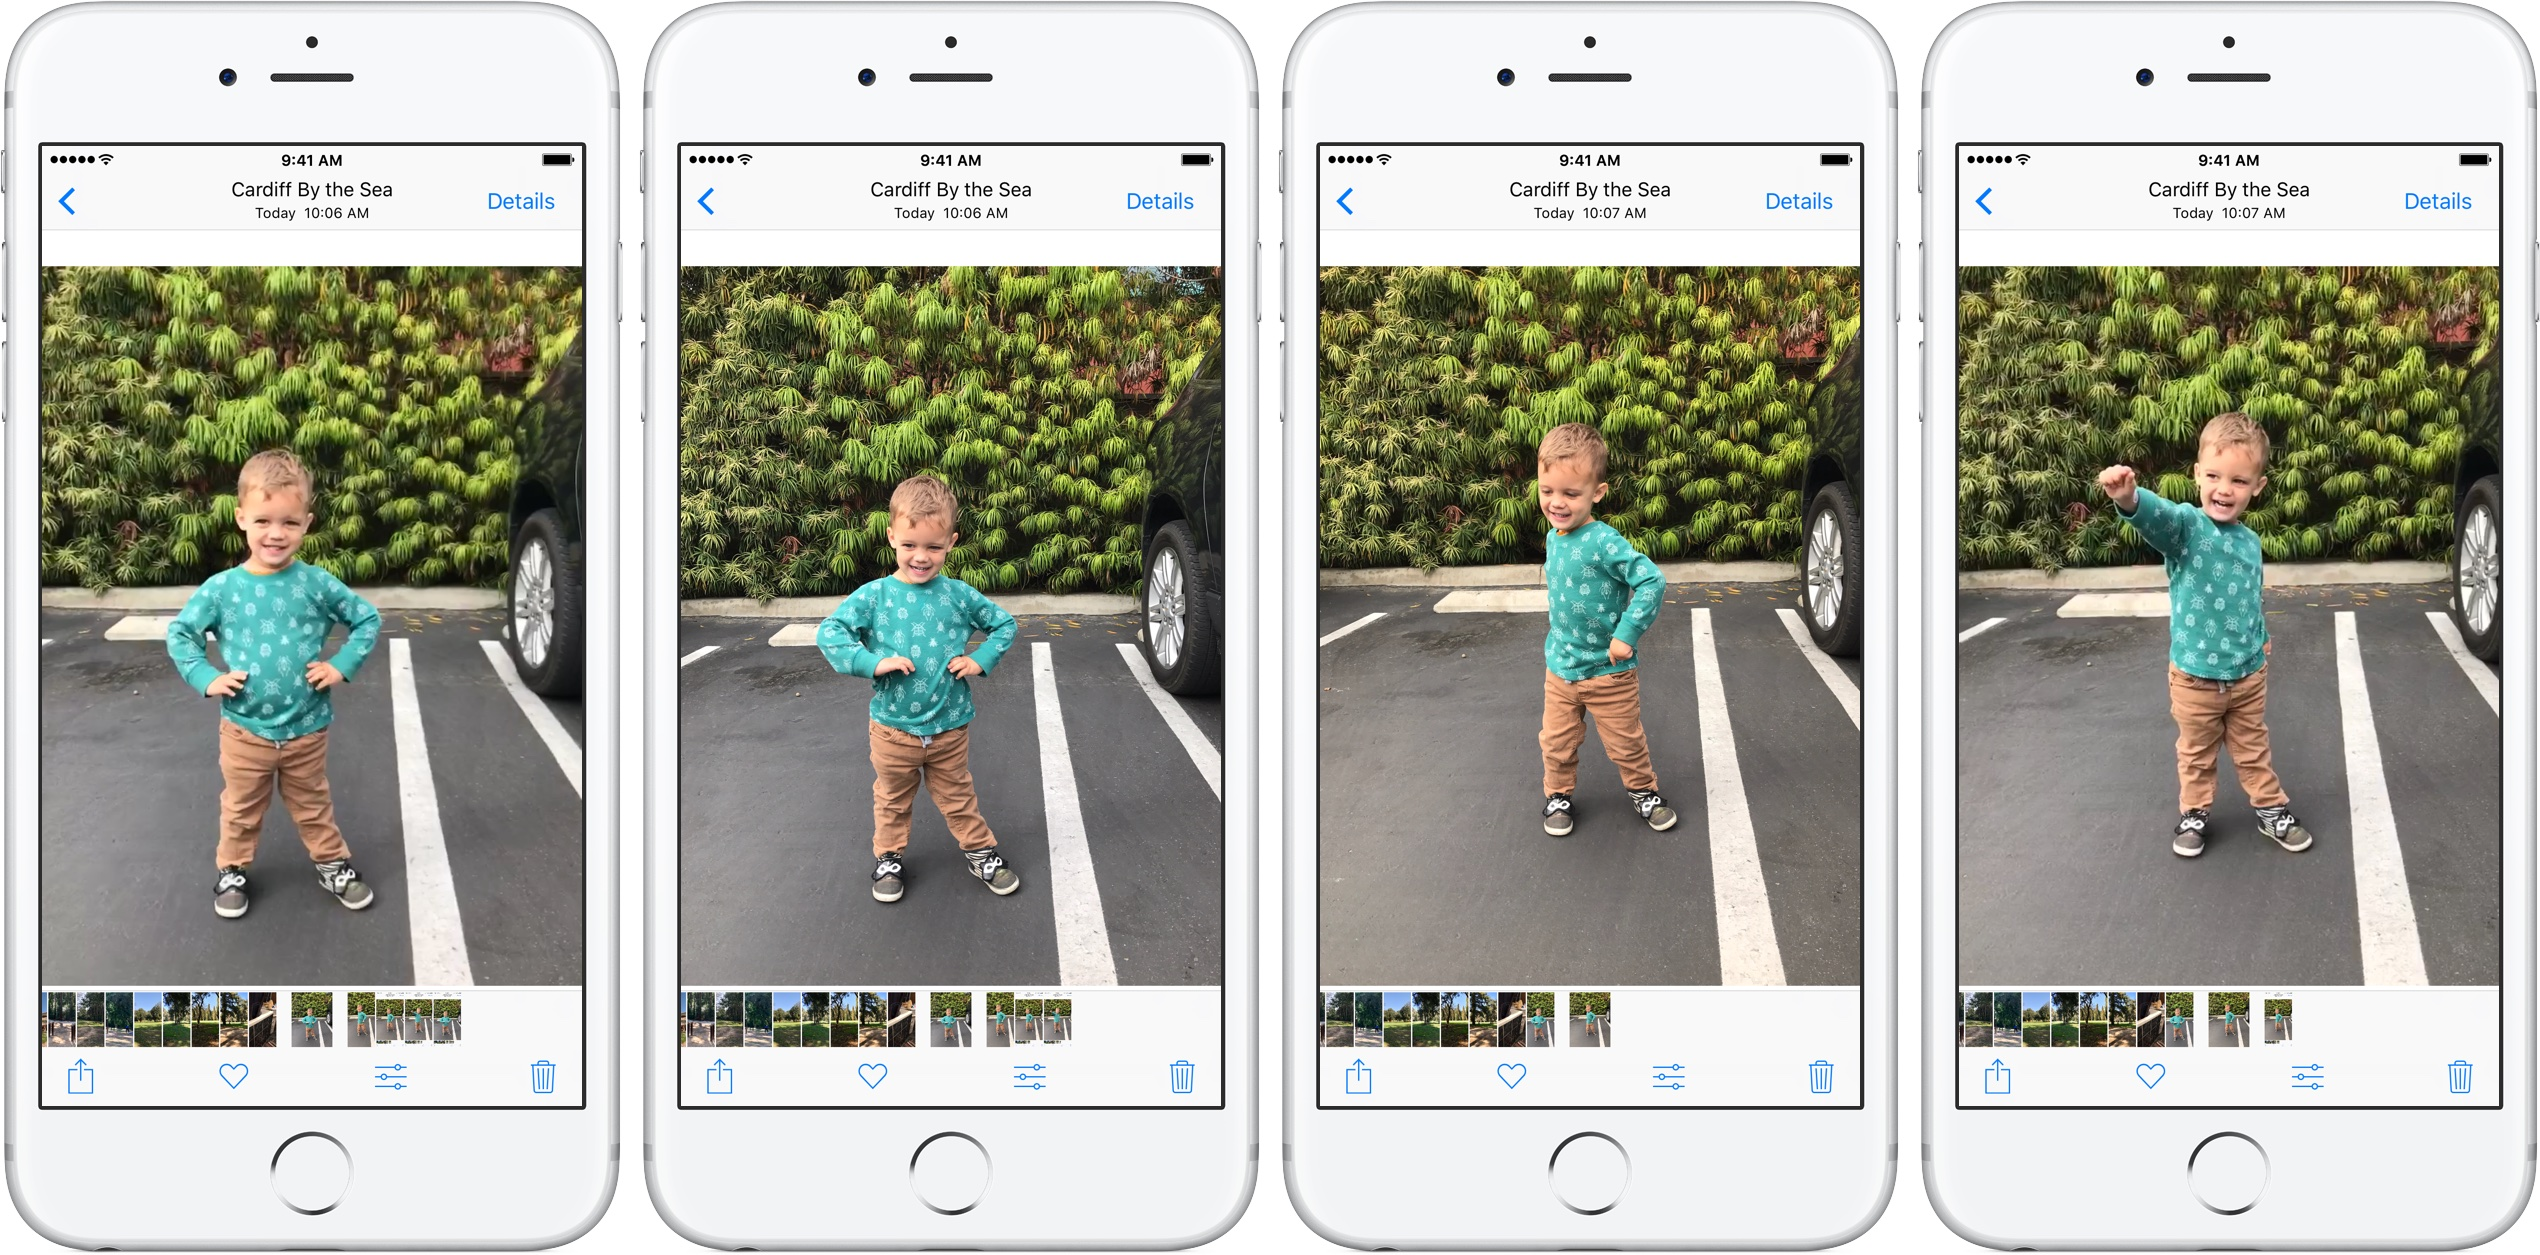 How to select different still frames of Live Photos